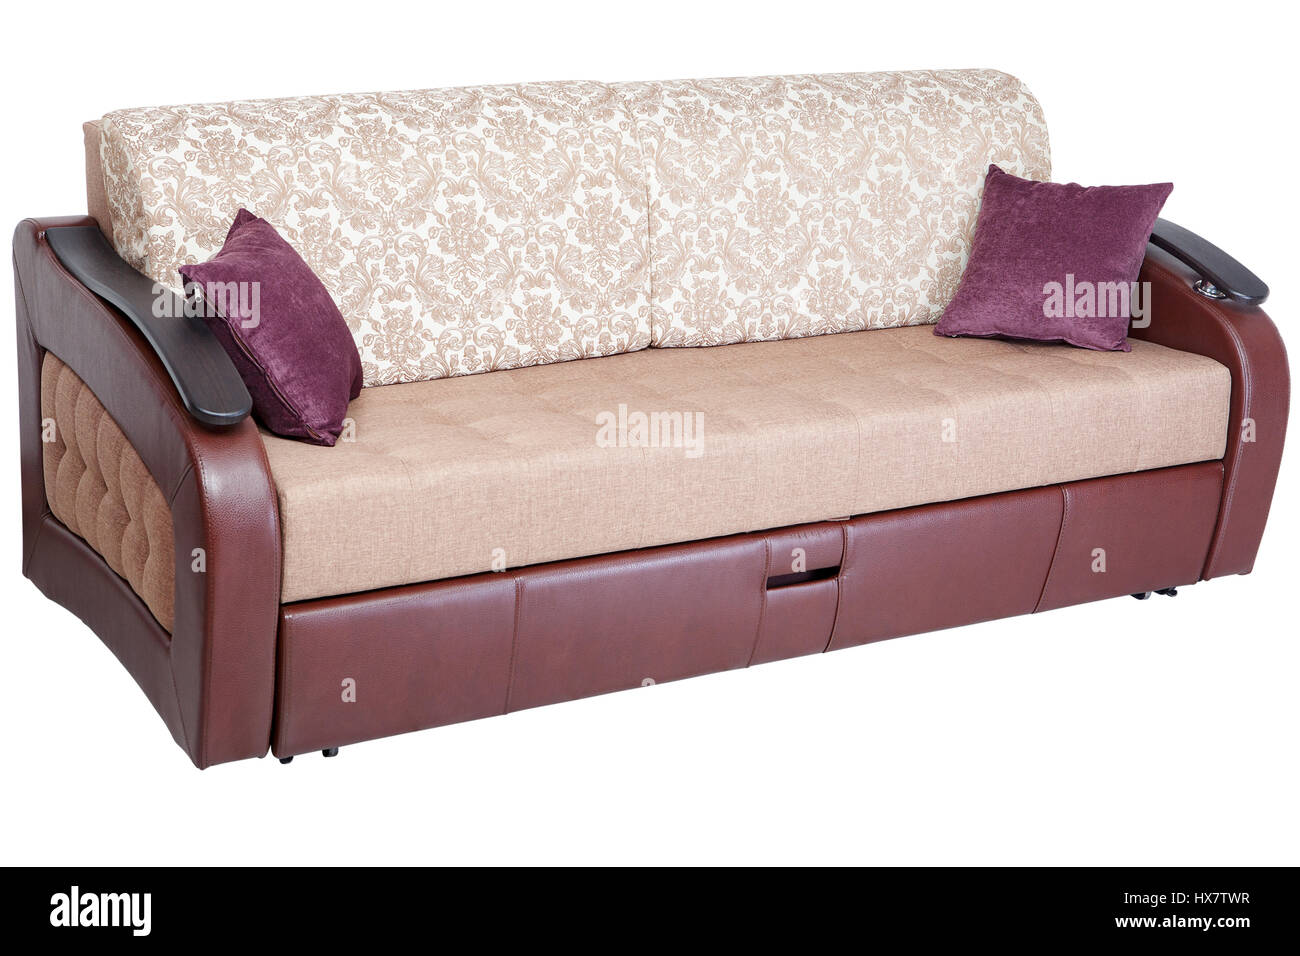 Sofa beds with storage space - Sleeper Convertible Sofa Bed Couch With Storage Space Isolated On White Background Saved Path Selection